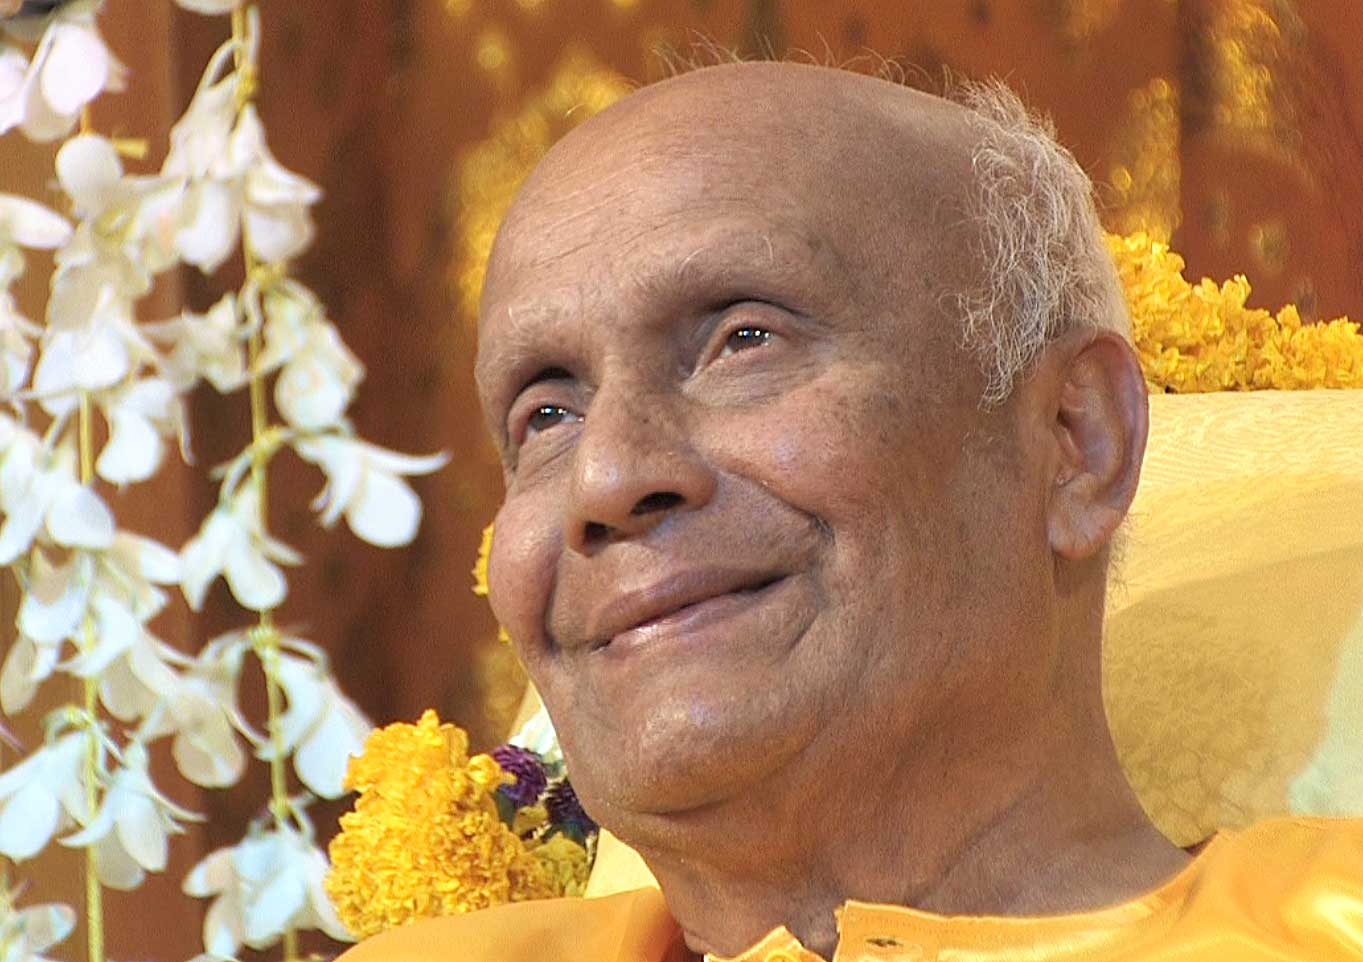 smile-thailand-sri-chinmoy-2007